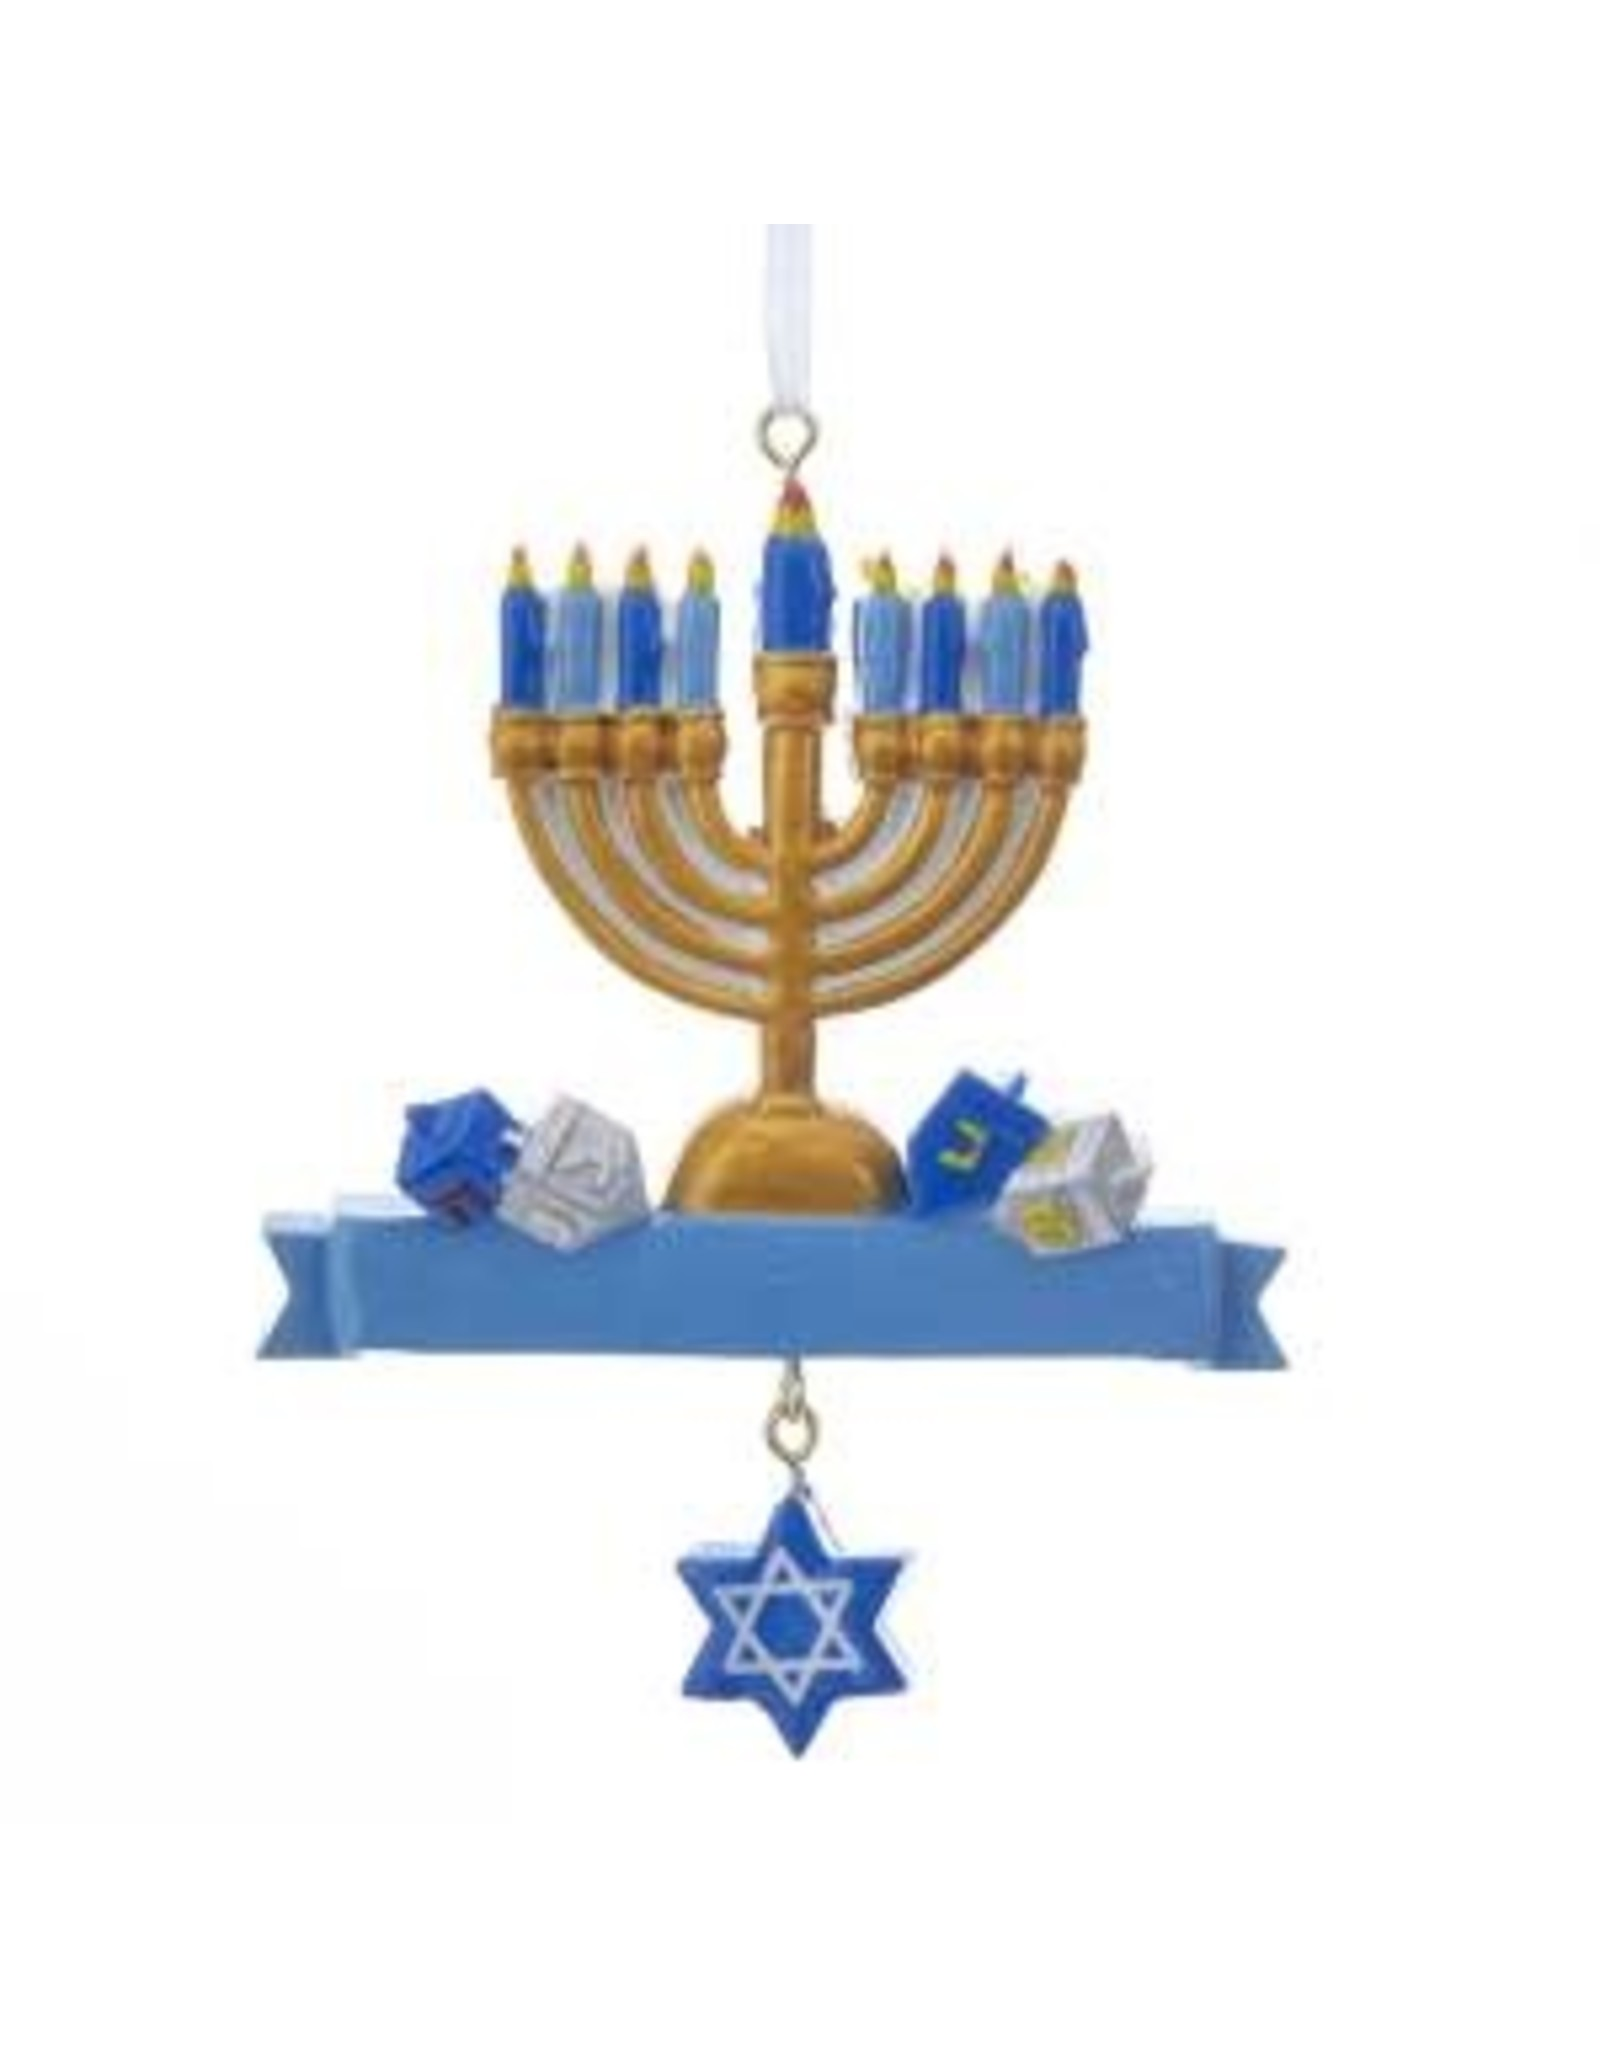 Kurt S. Adler Hanukkah Menorah Ornament